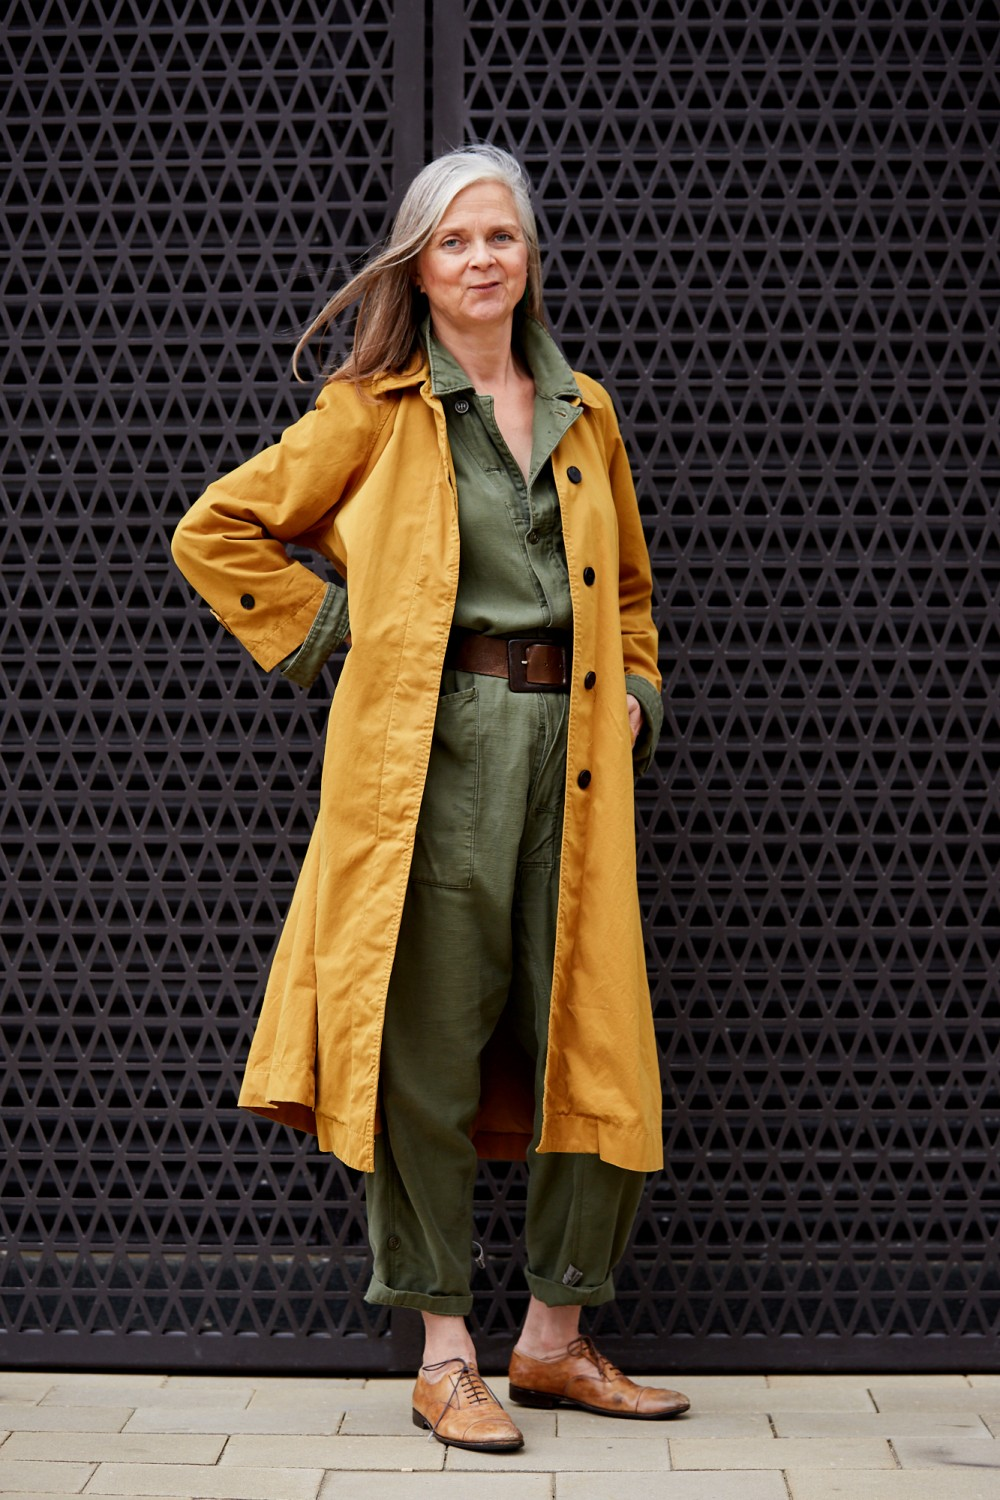 How to wear a colourful coat